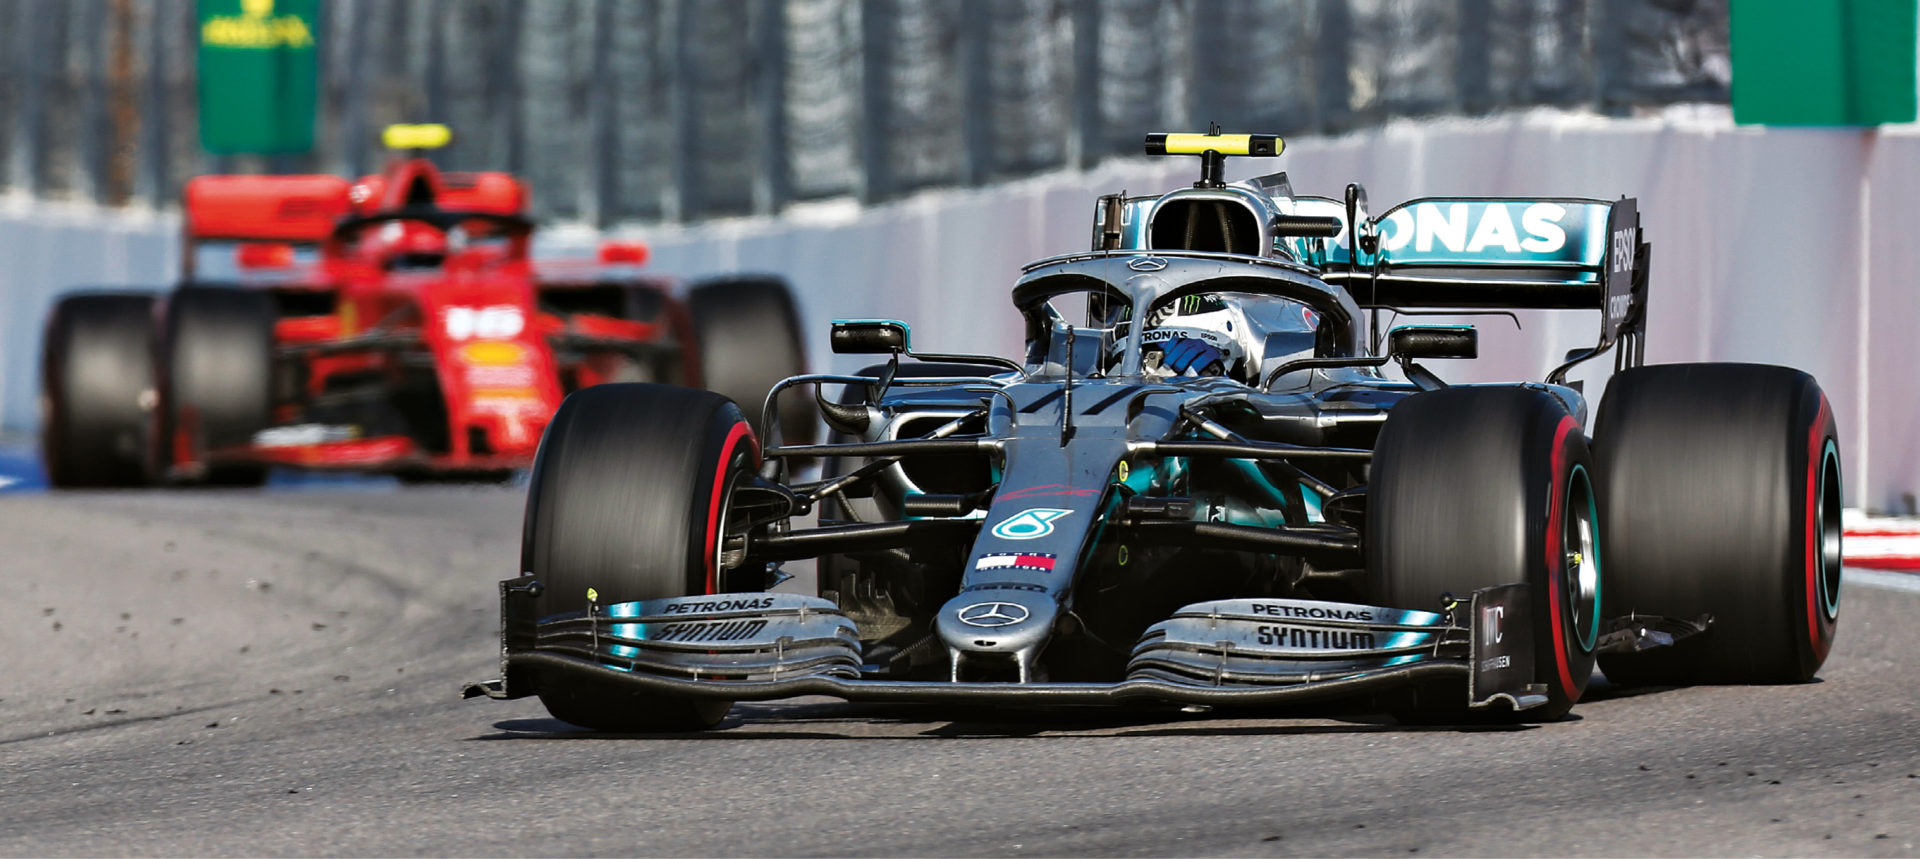 Bottas's glories have been tempered by difficult races, such as being told to move aside for Hamilton in Russia